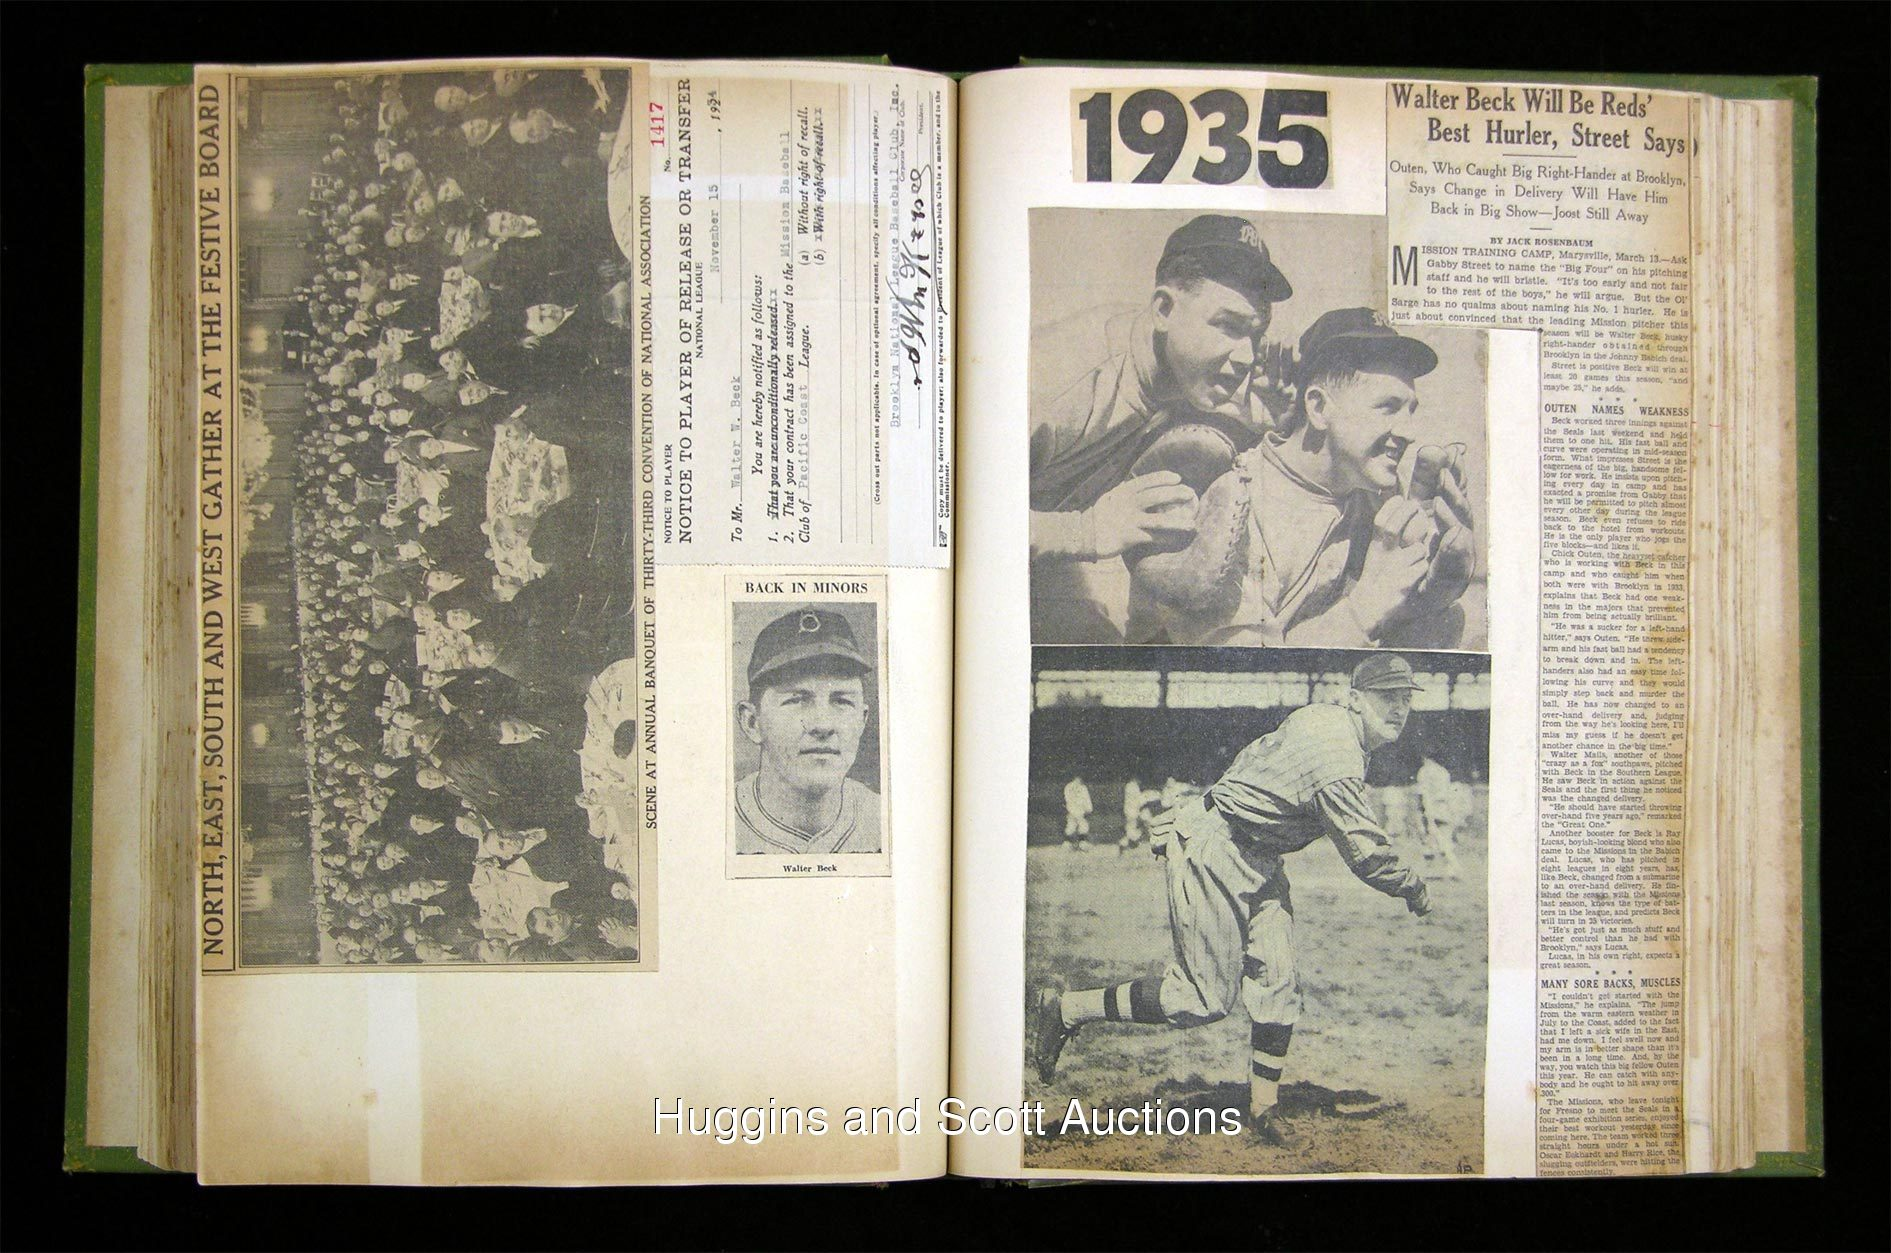 How to scrapbook newspaper - Pictures Click On Photo To Enlarge